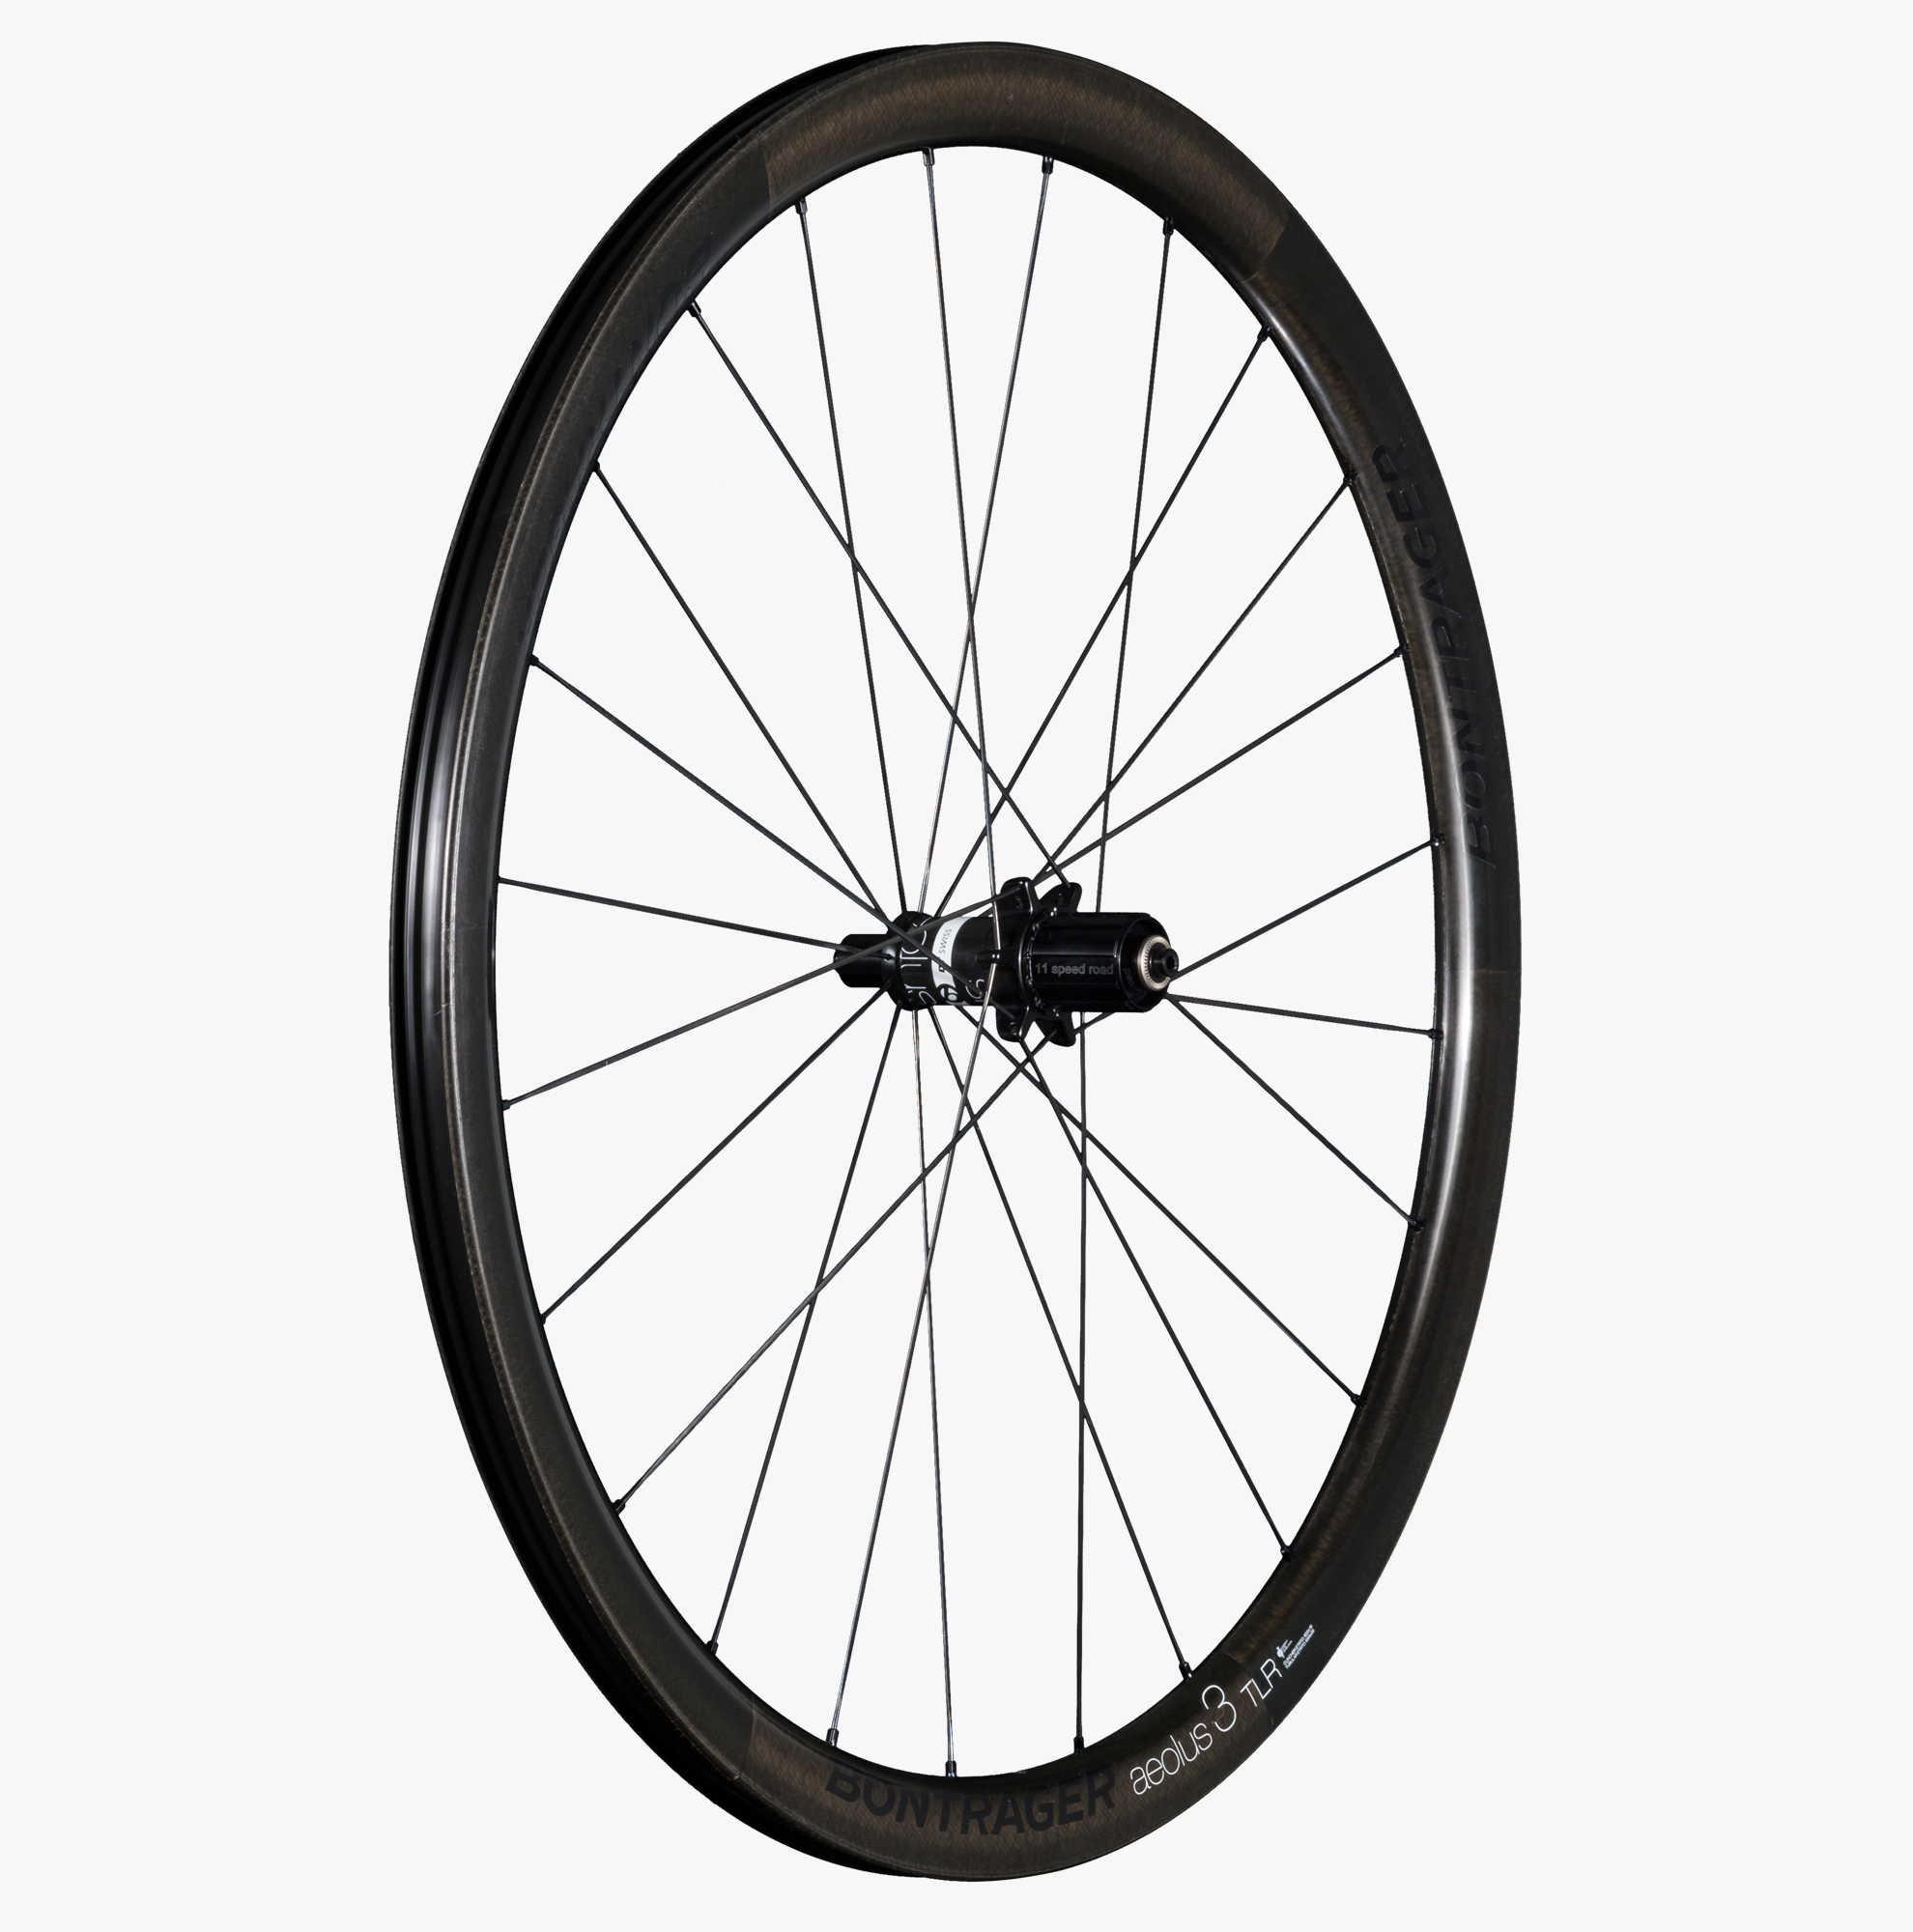 fbae17bb681 THE BEST ALL-AROUND ROAD BIKE WHEELS - 2016 | In The Know Cycling